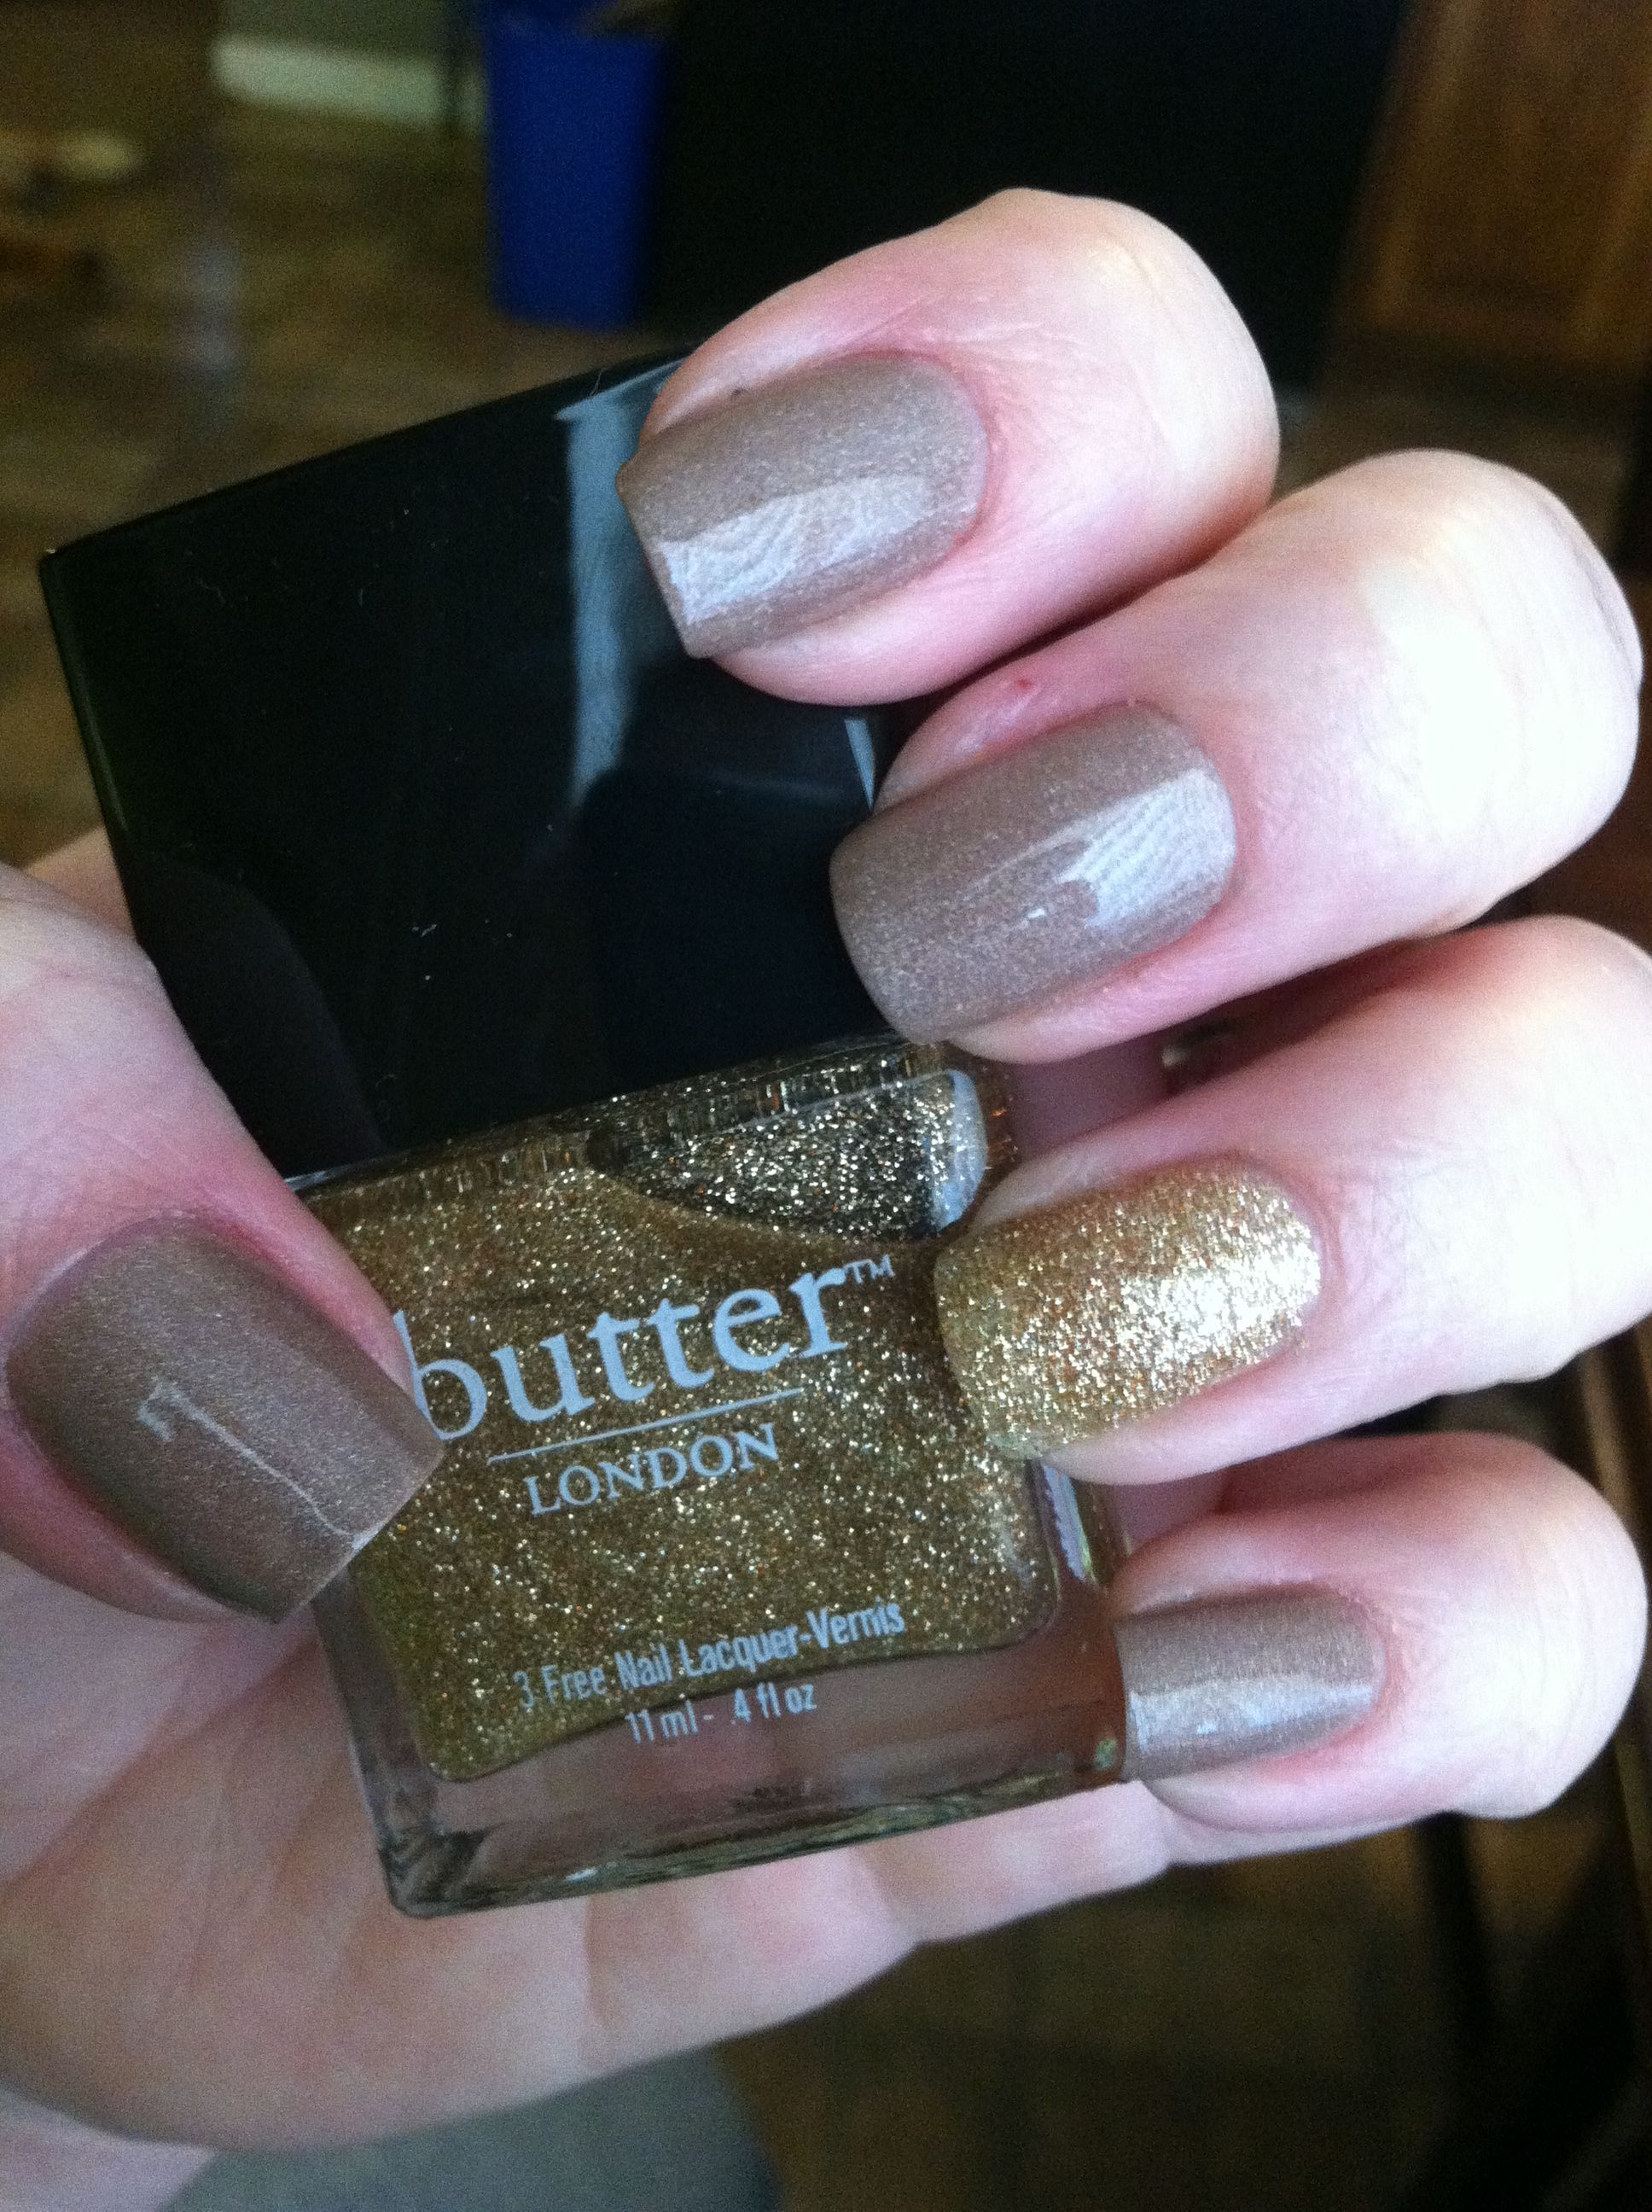 Butter- all hail the queen with west end wonderland. LOVE these colors!